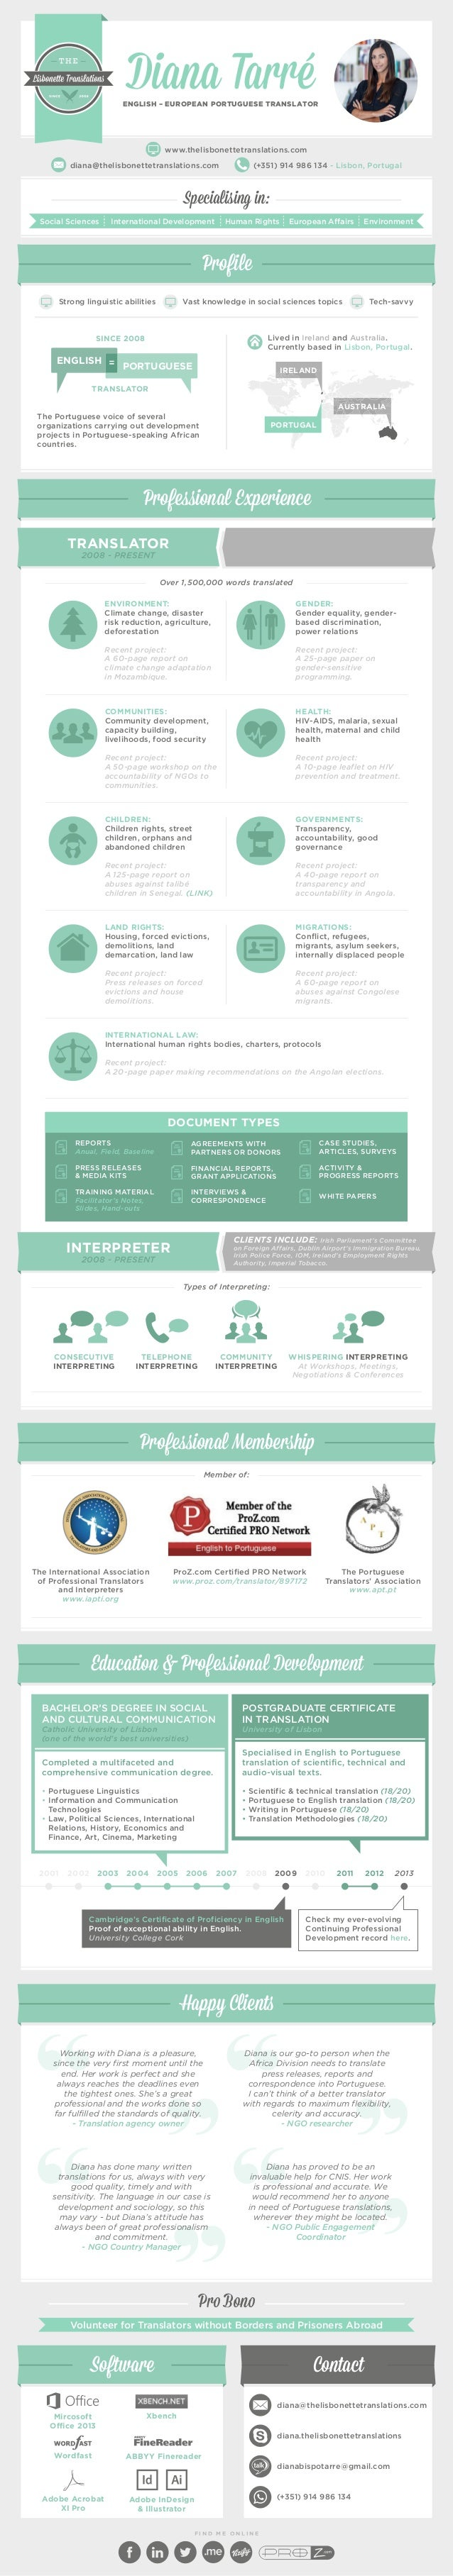 diana tarr eacute infographic cv diana tarreacute english european portuguese translator thelisbonettetranslations com diana thelisbonettetranslations